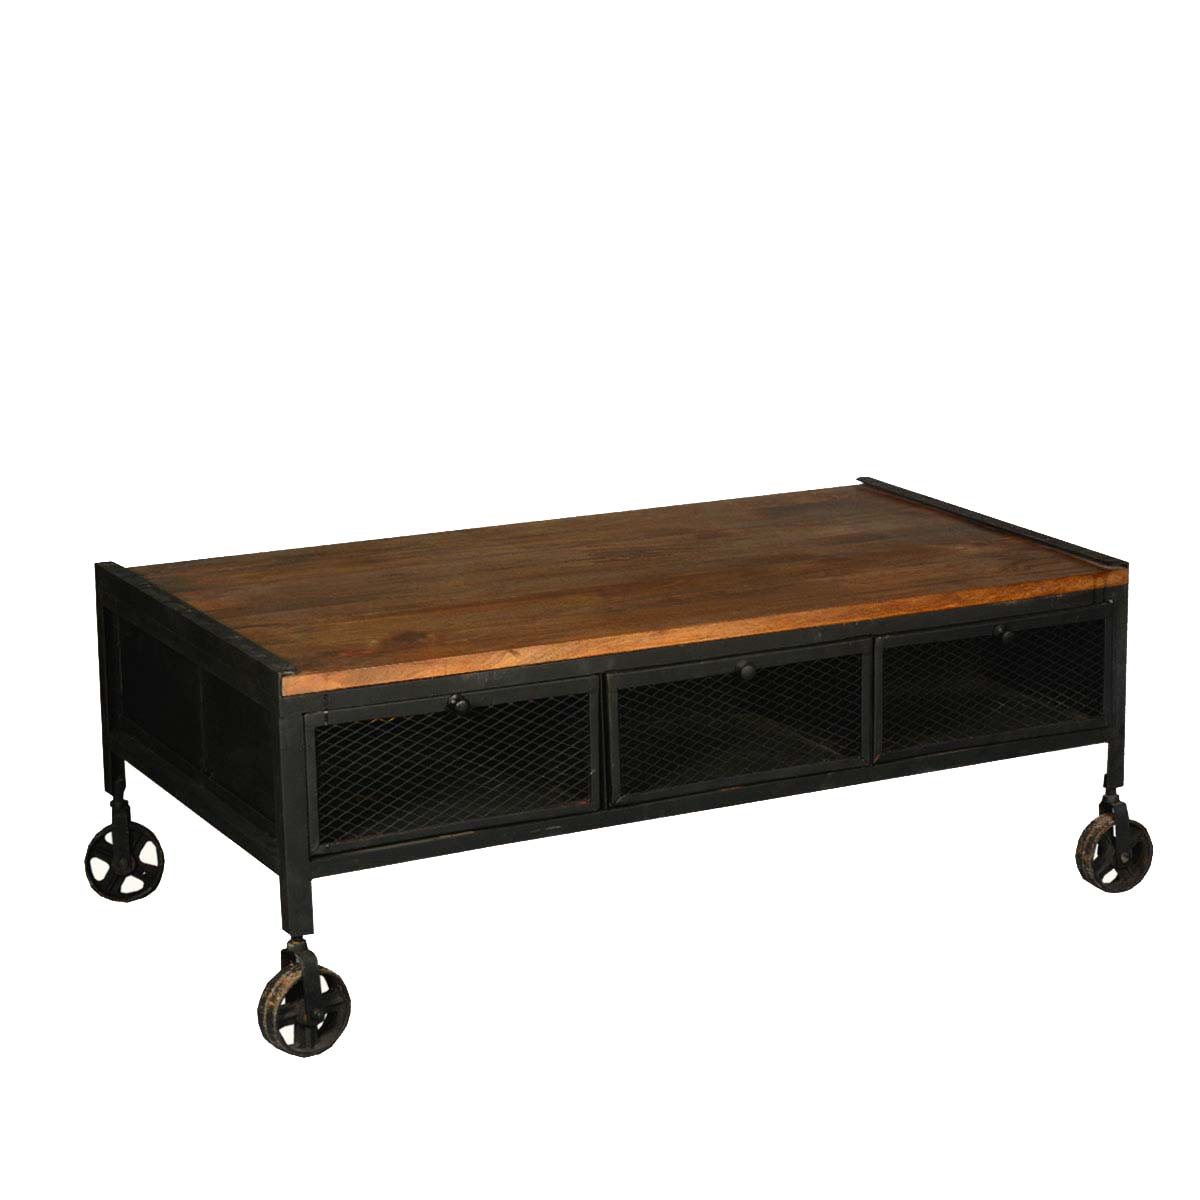 Aiden industrial rustic coffee table with drawers for Coffee table